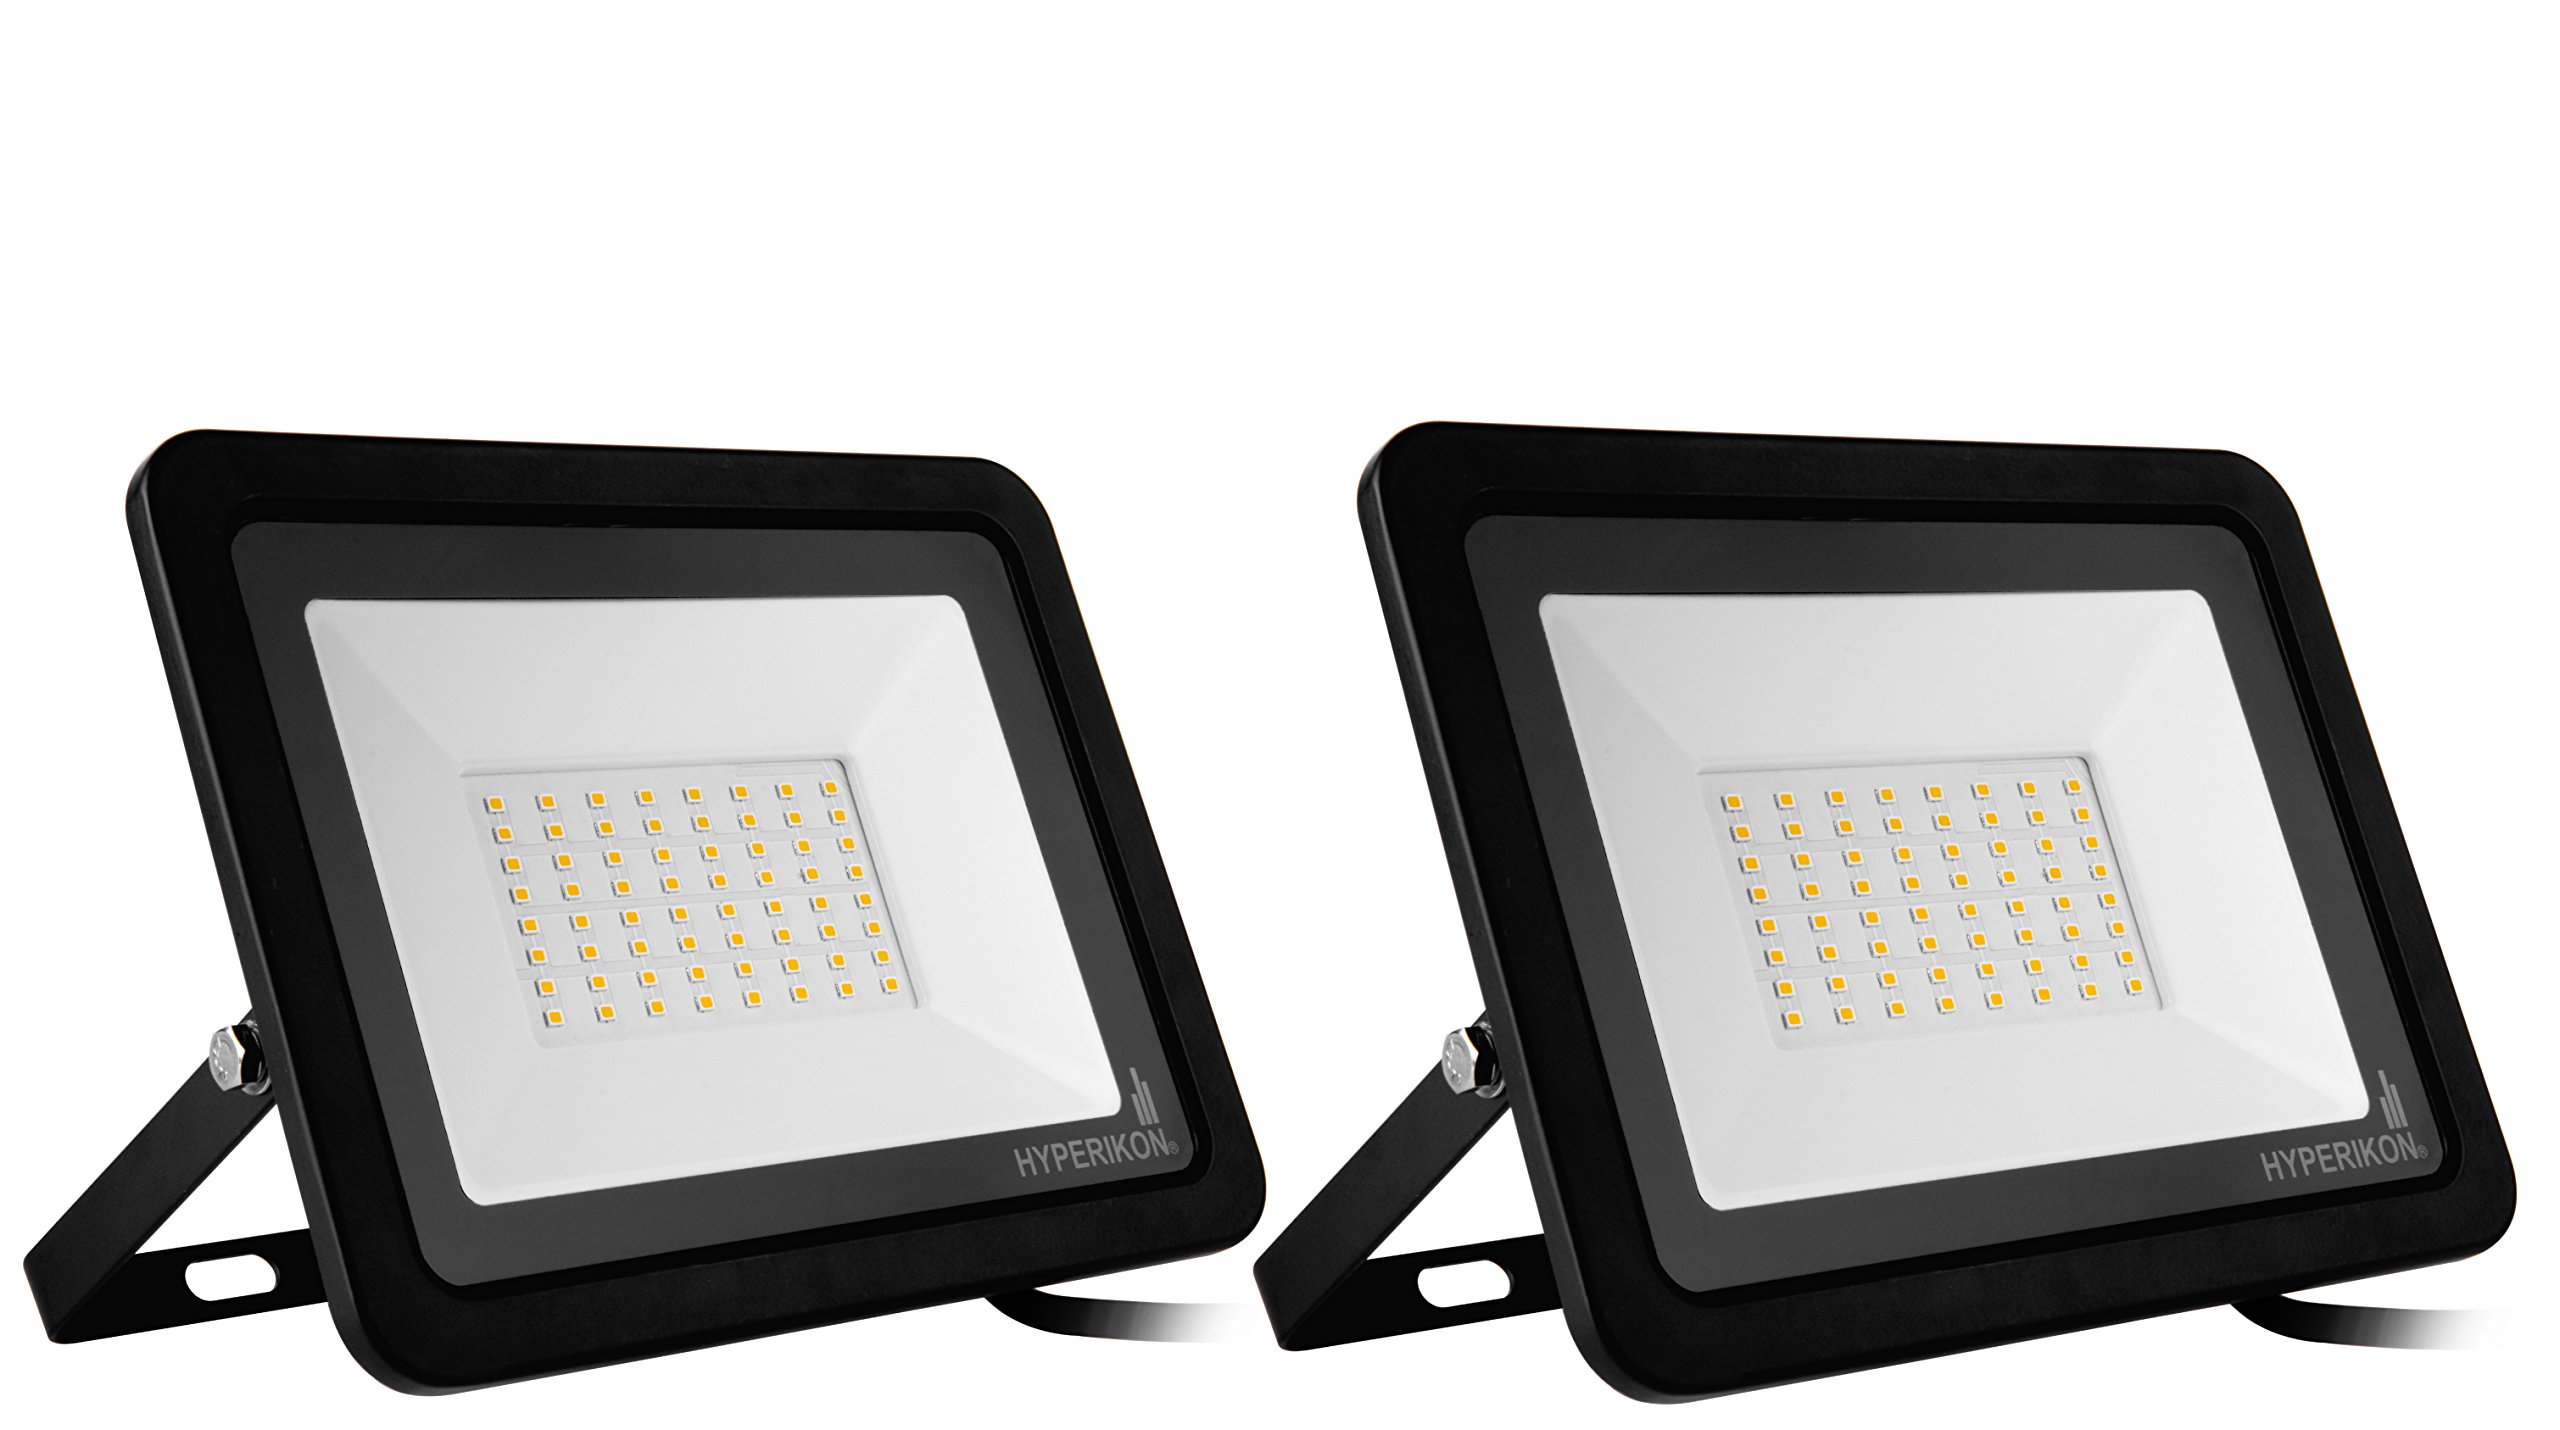 Hyperikon 50W LED Flood Light with 180° Rotatable Bracket, 5000k, 4000 Lumens, Super Bright Outdoor LED Floodlight, Weatherproof IP65, Suitable for Dry and Damp Locations, 110V, 2-Pack